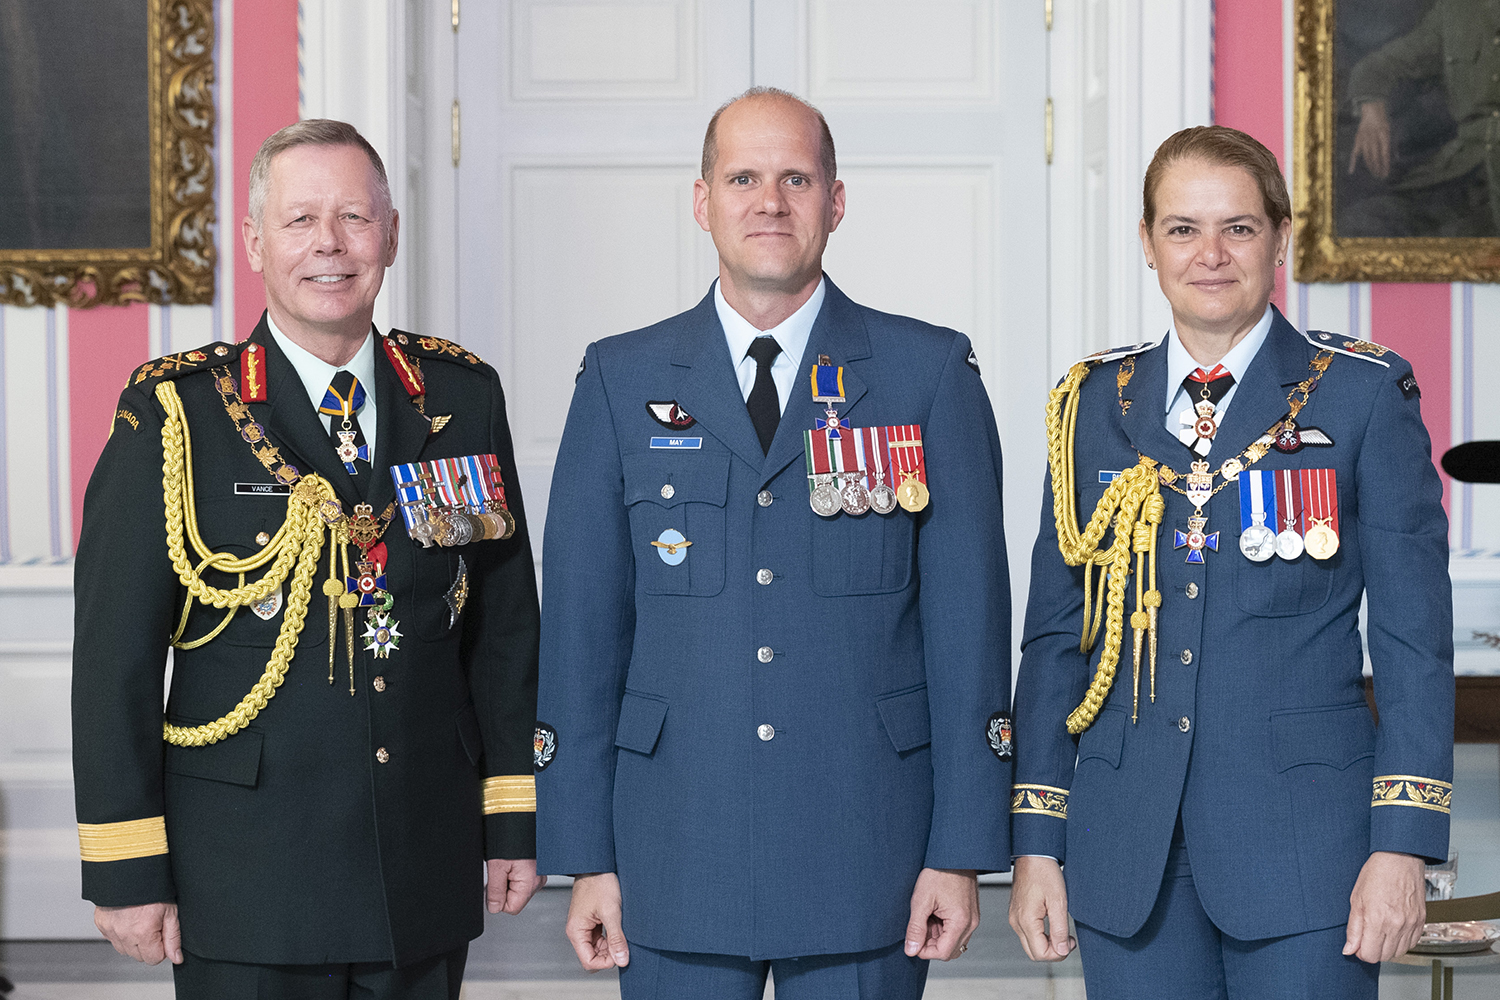 Master Warrant Officer Duane Lewis May, M.M.M., C.D. (centre) stands with Governor-General Julie Payette and Chief of the Defence Staff General Jonathan Vance after receiving the Member insignia of the Order of Military Merit from the Governor General. PHOTO: Sergeant Johanie Maheu, Rideau Hall, © OSGG, GG0505-2019-0118-046